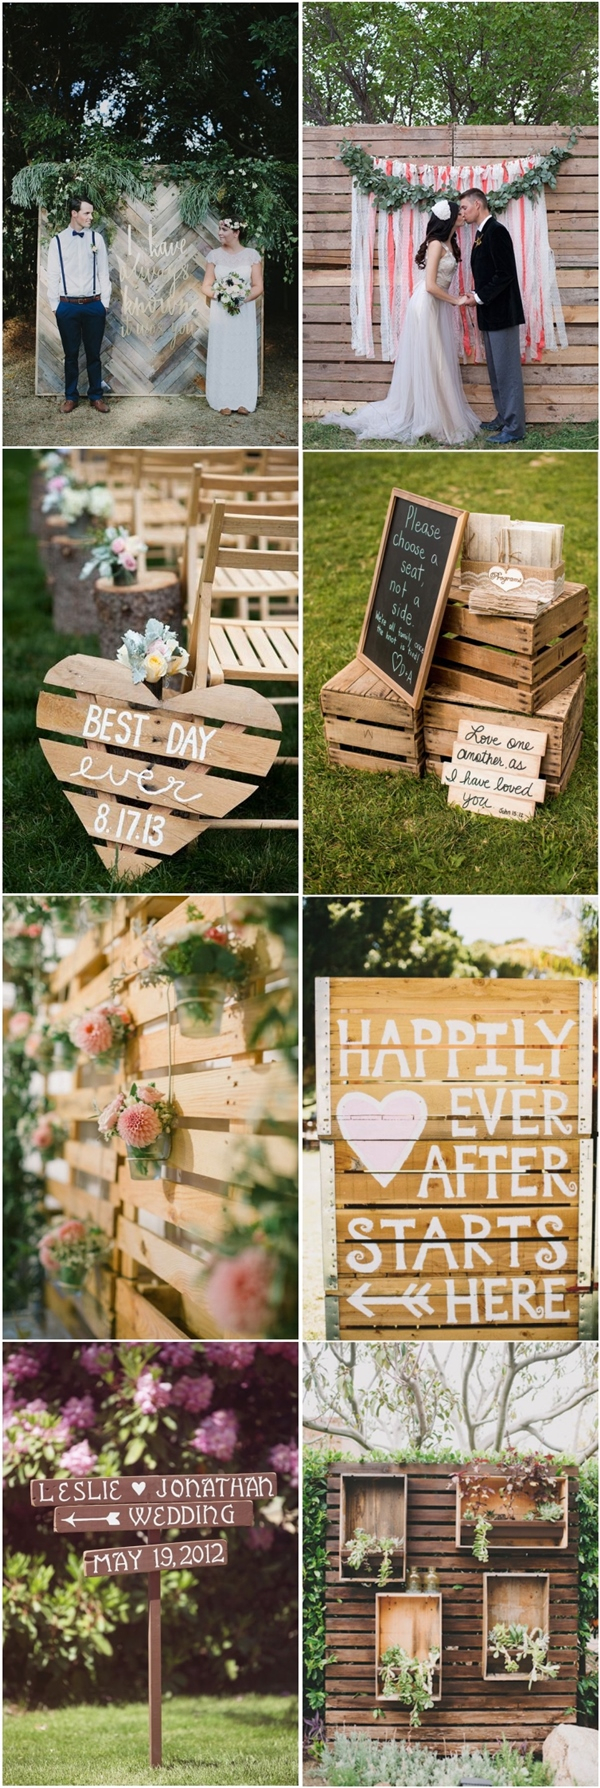 Wedding Pallet Ideas 35 Eco Chic Ways To Use Rustic Wood Pallets In Your Wedding Deer